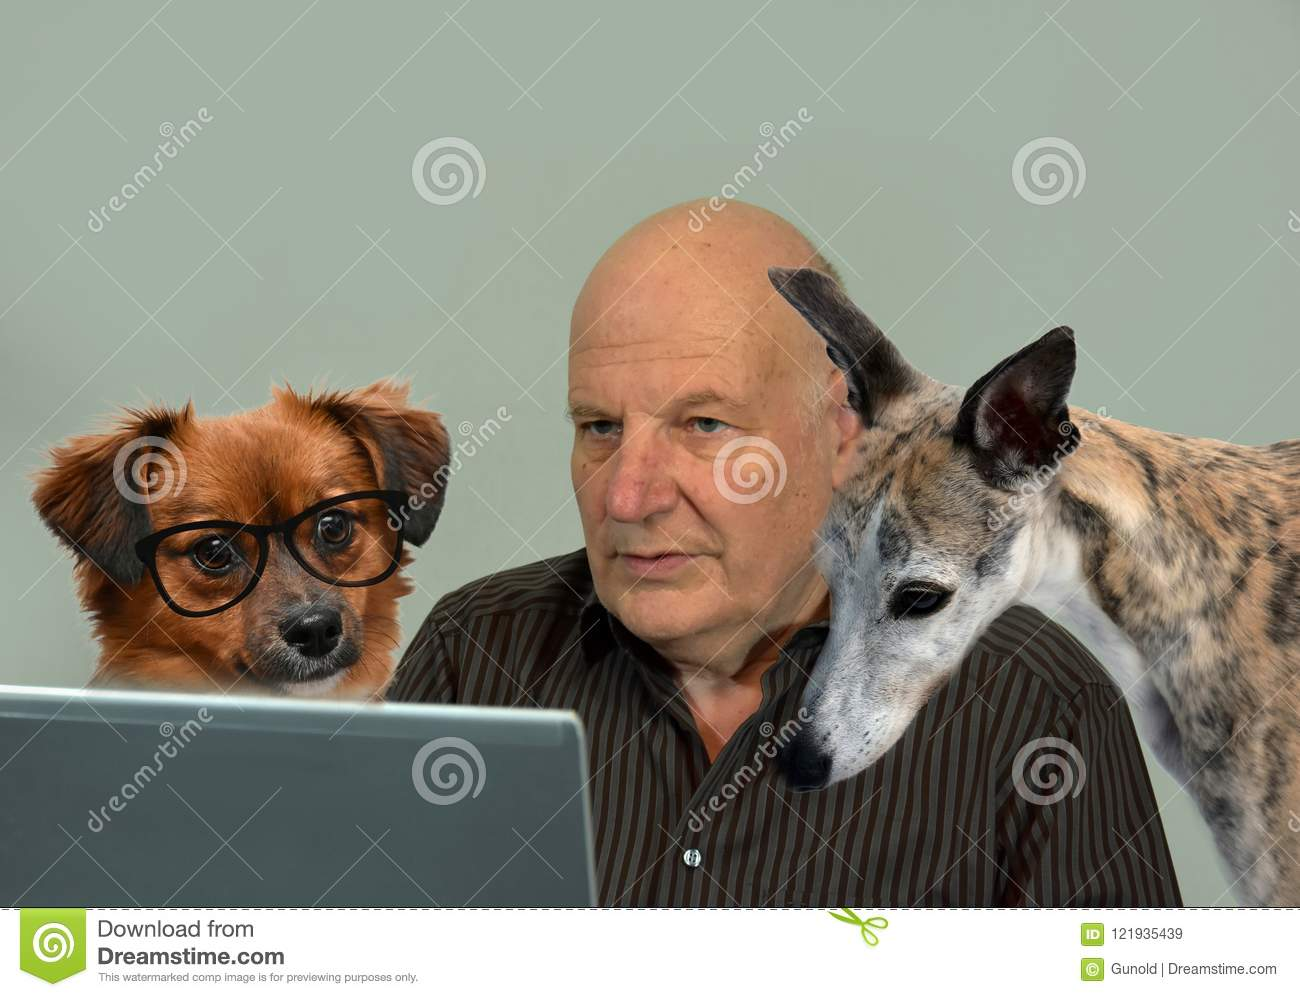 May we help you? Dogs and man working together, forming a tea